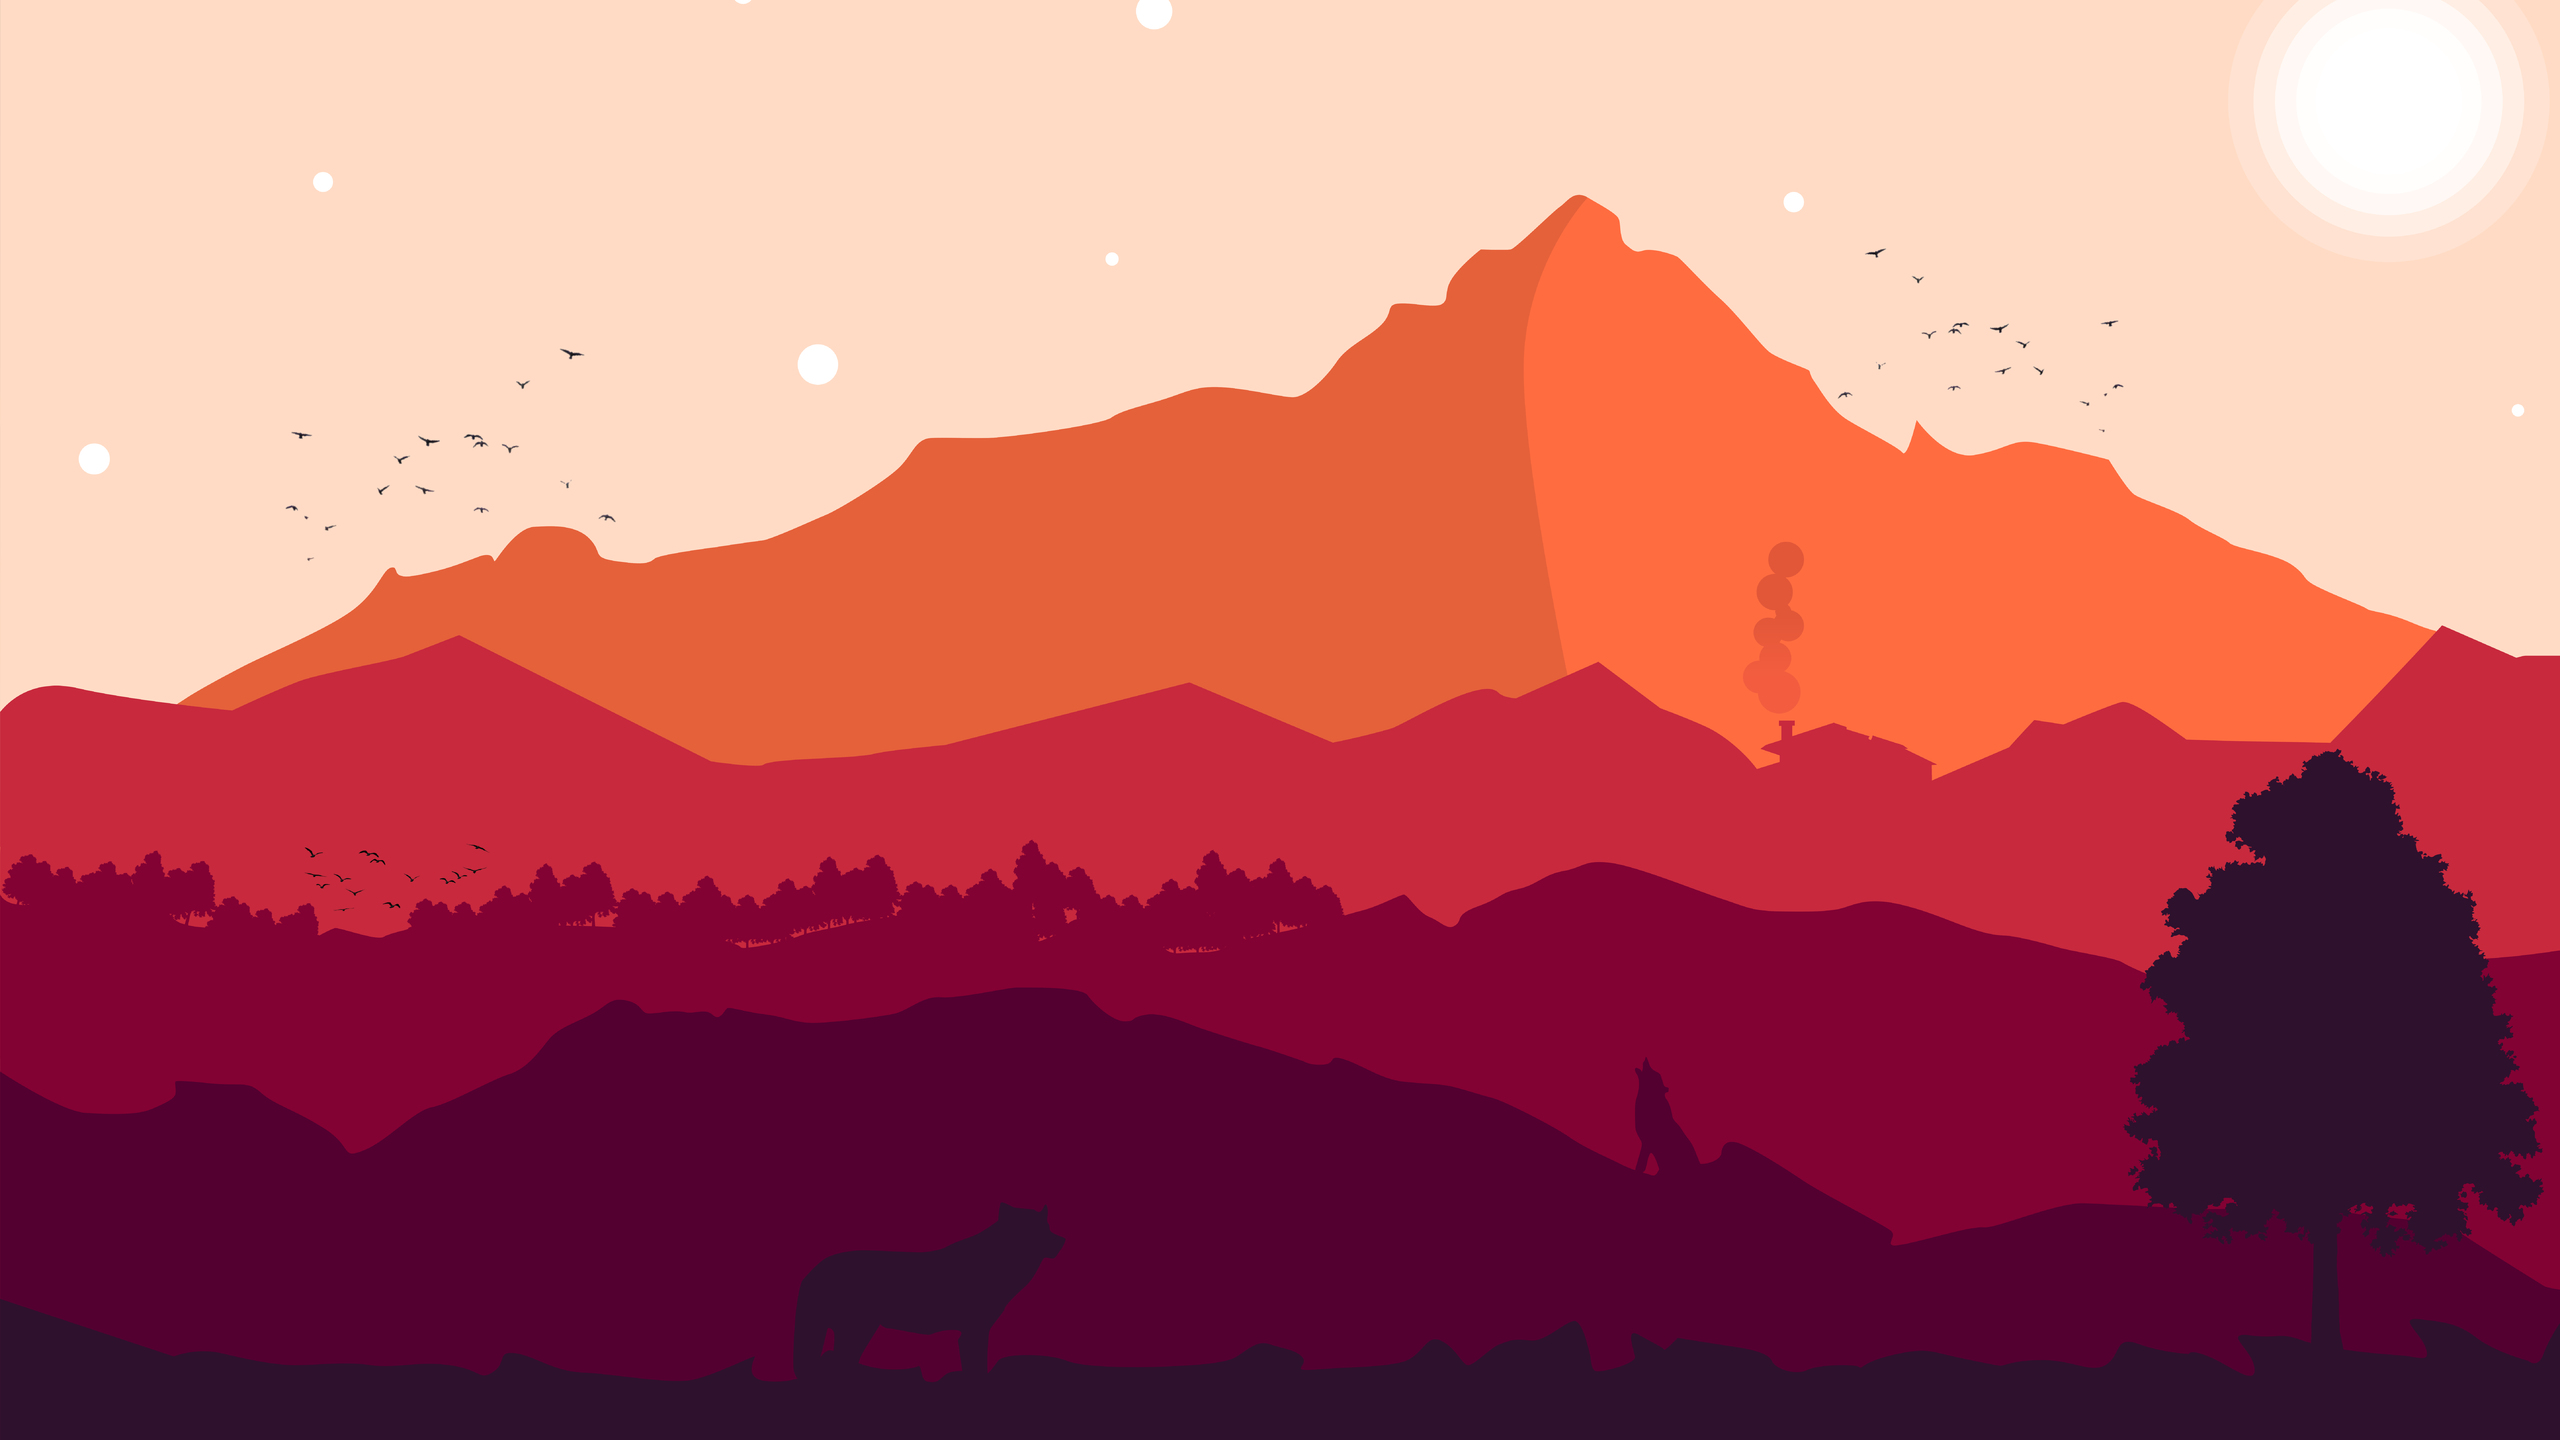 firewatch 2560x1440 resolution wallpapers 1440p resolution